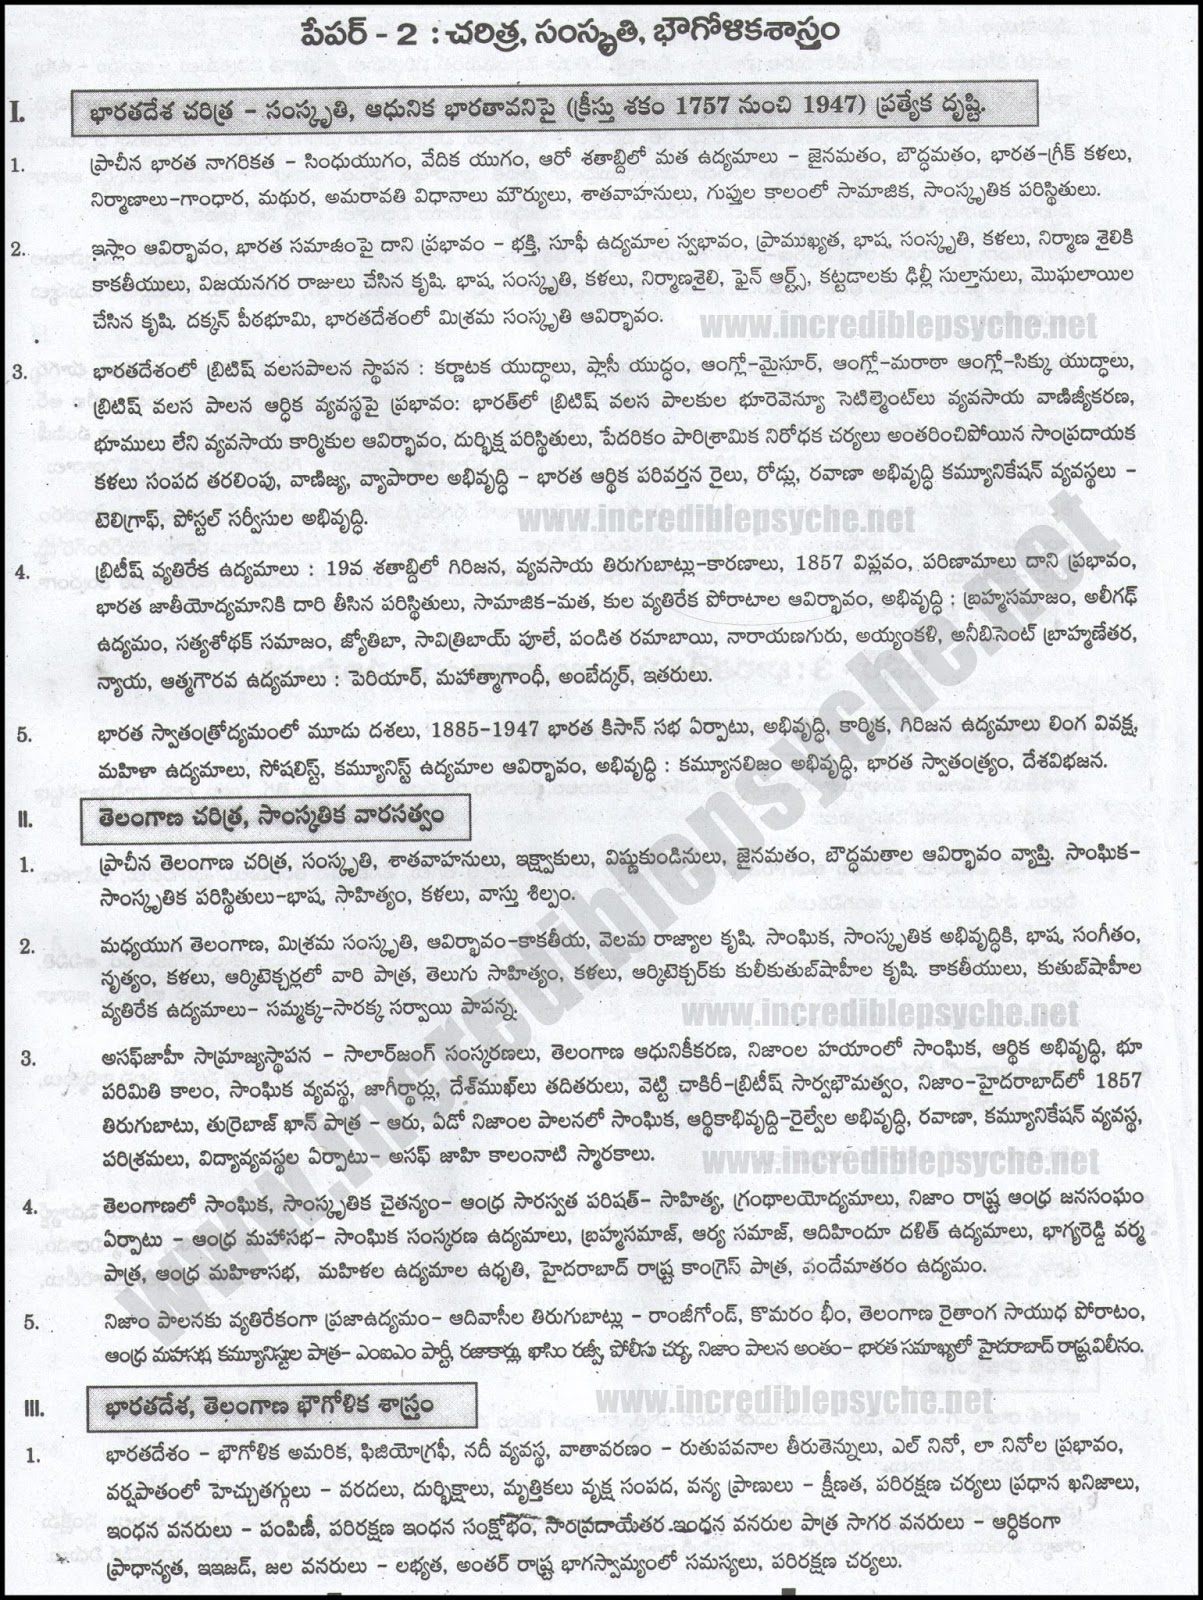 telangana tspsc group 1 exam syllabus in telugu with scheme of exam pattern detailed pattern 2